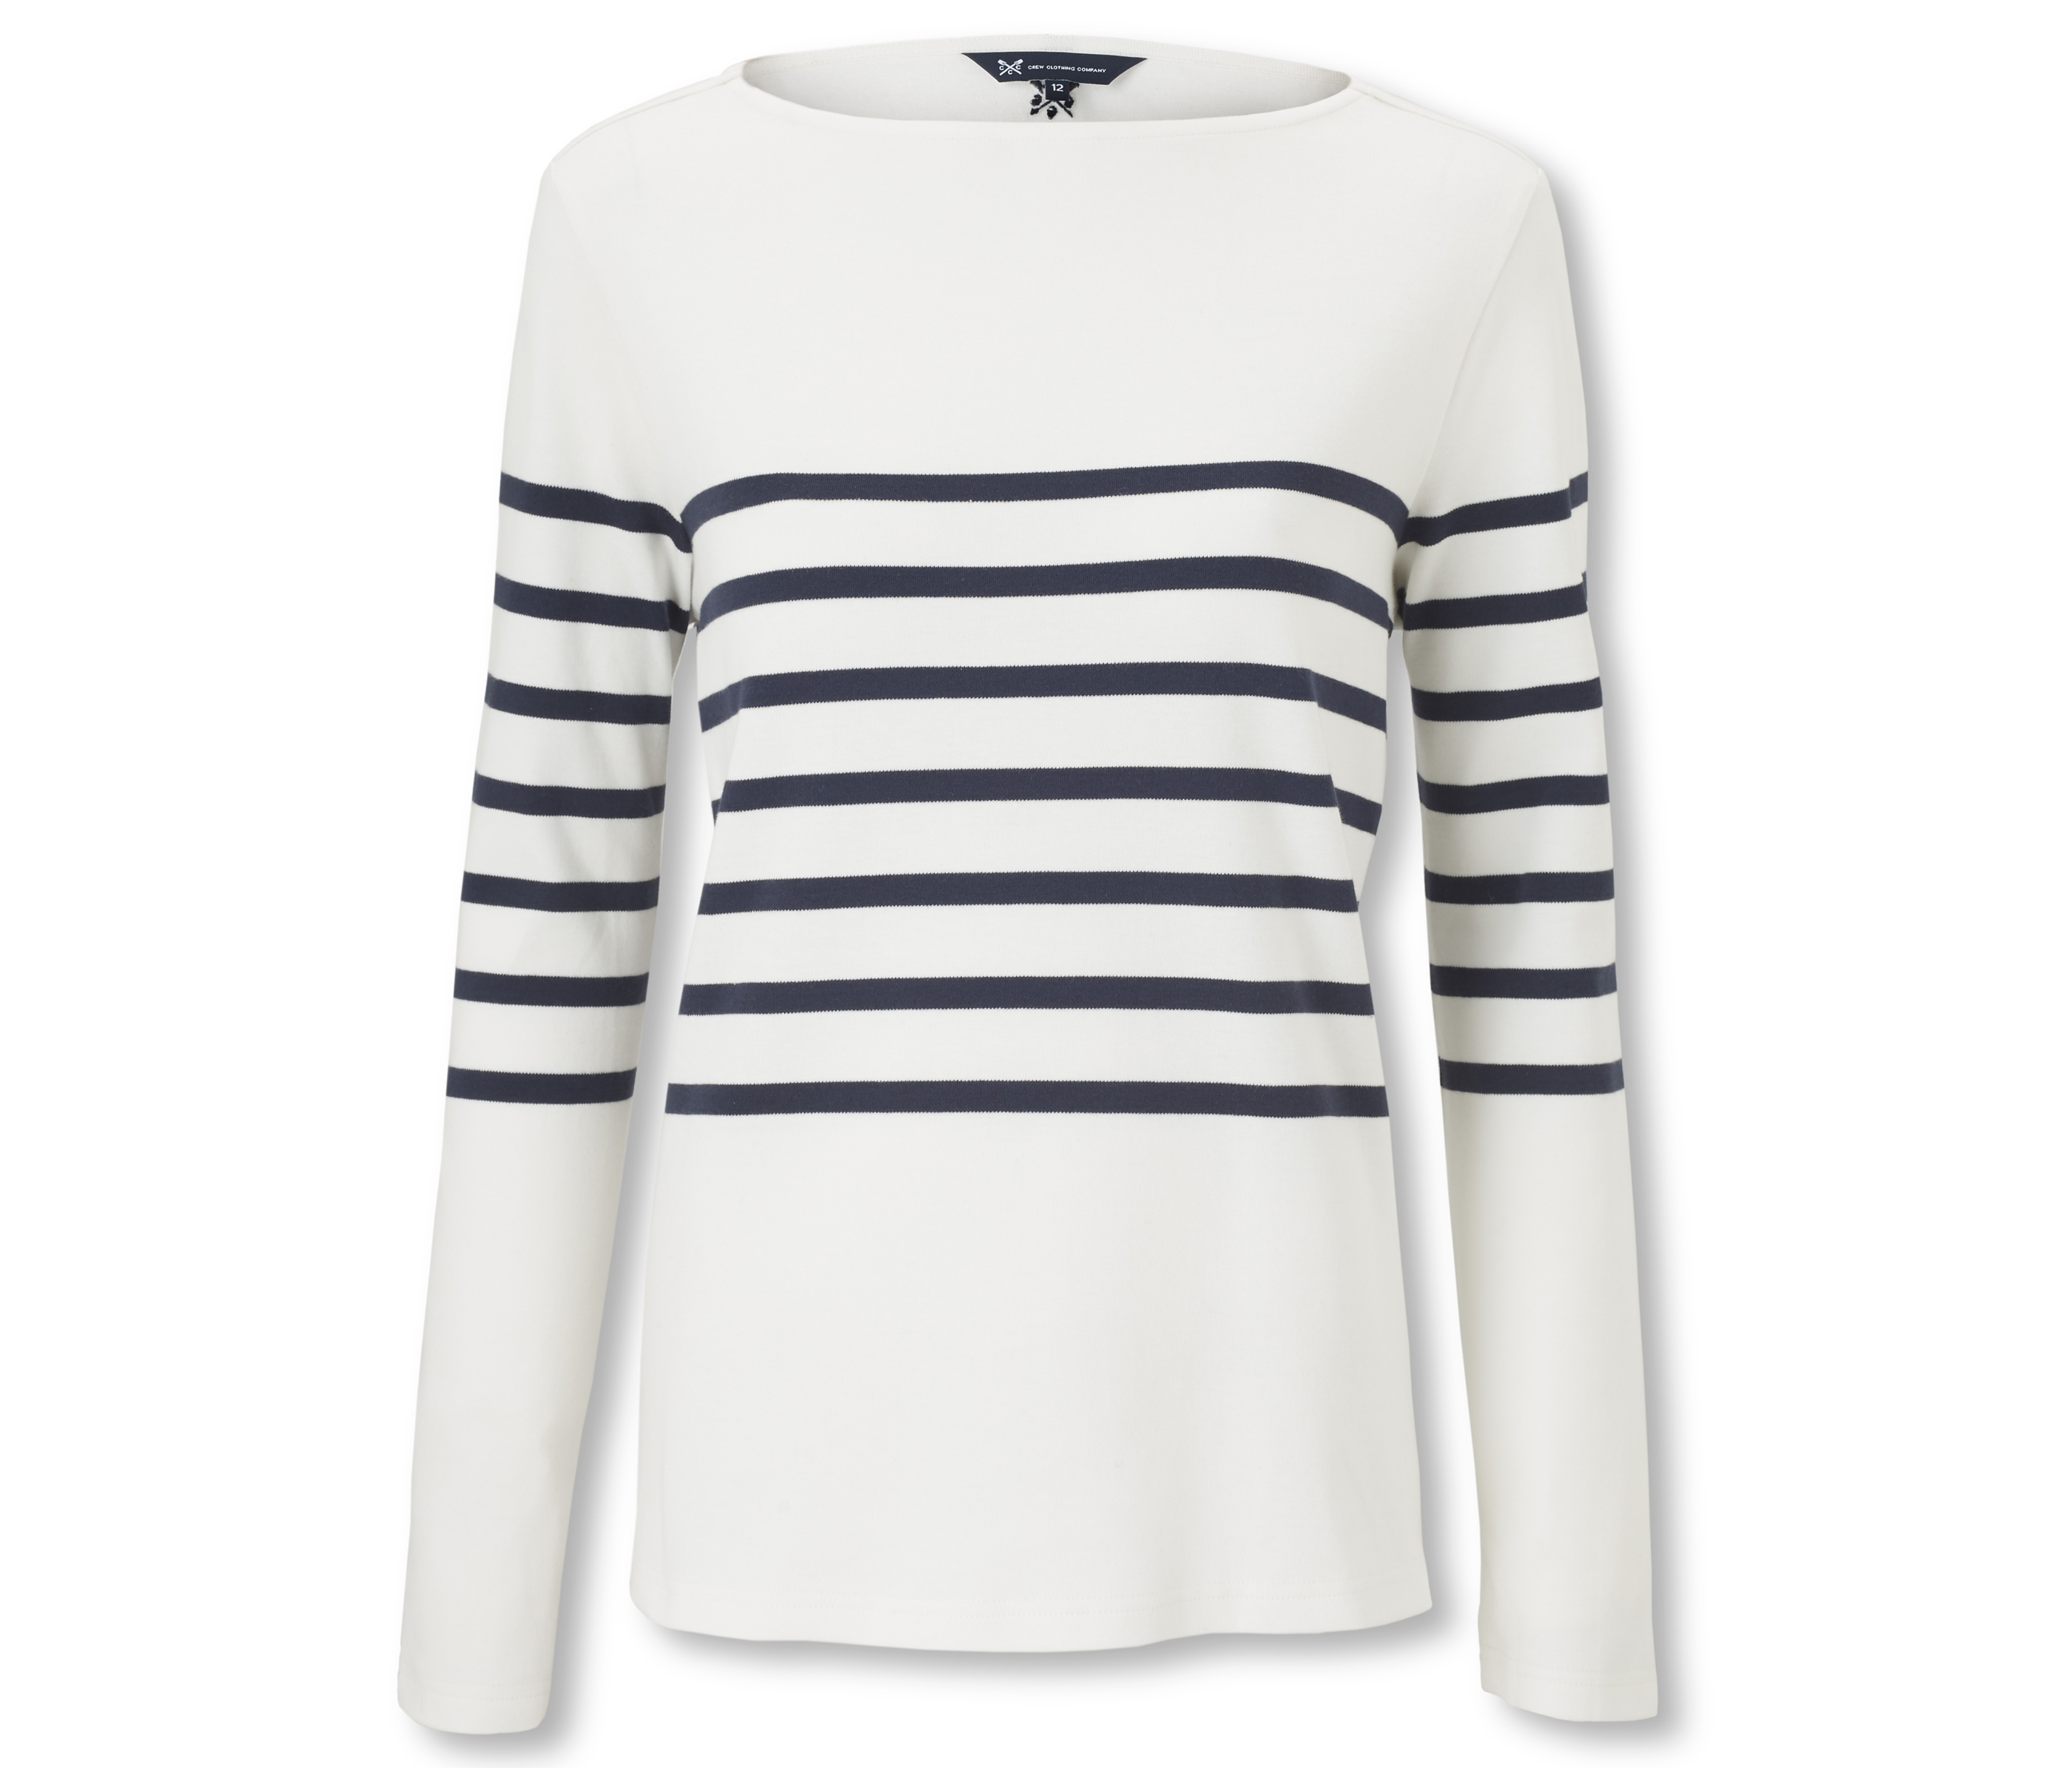 89995f352f27 Where to get the best Breton tops on the high street - Fashion from ...